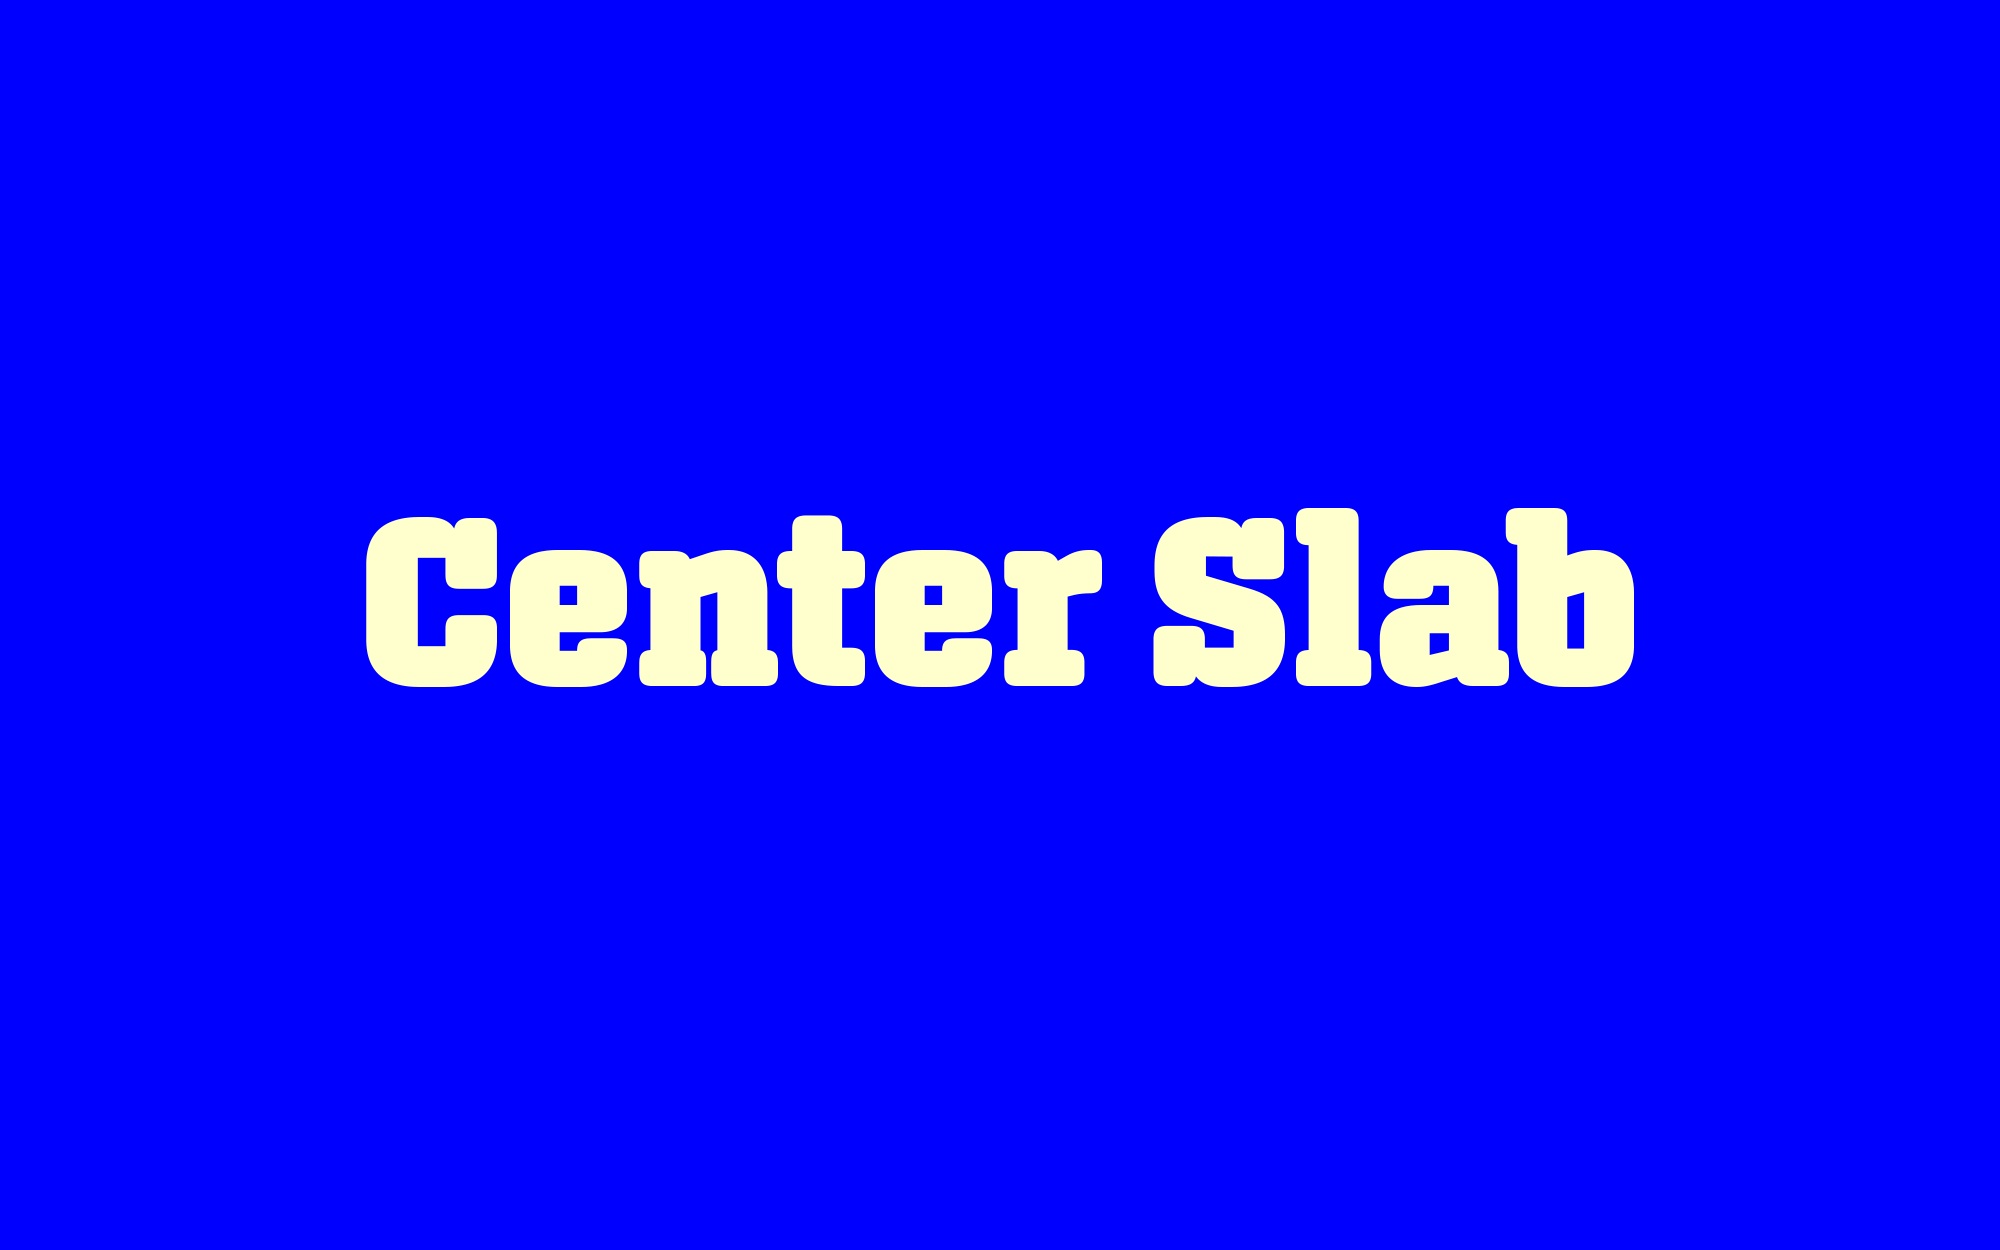 Cover image: Center Slab Typeface